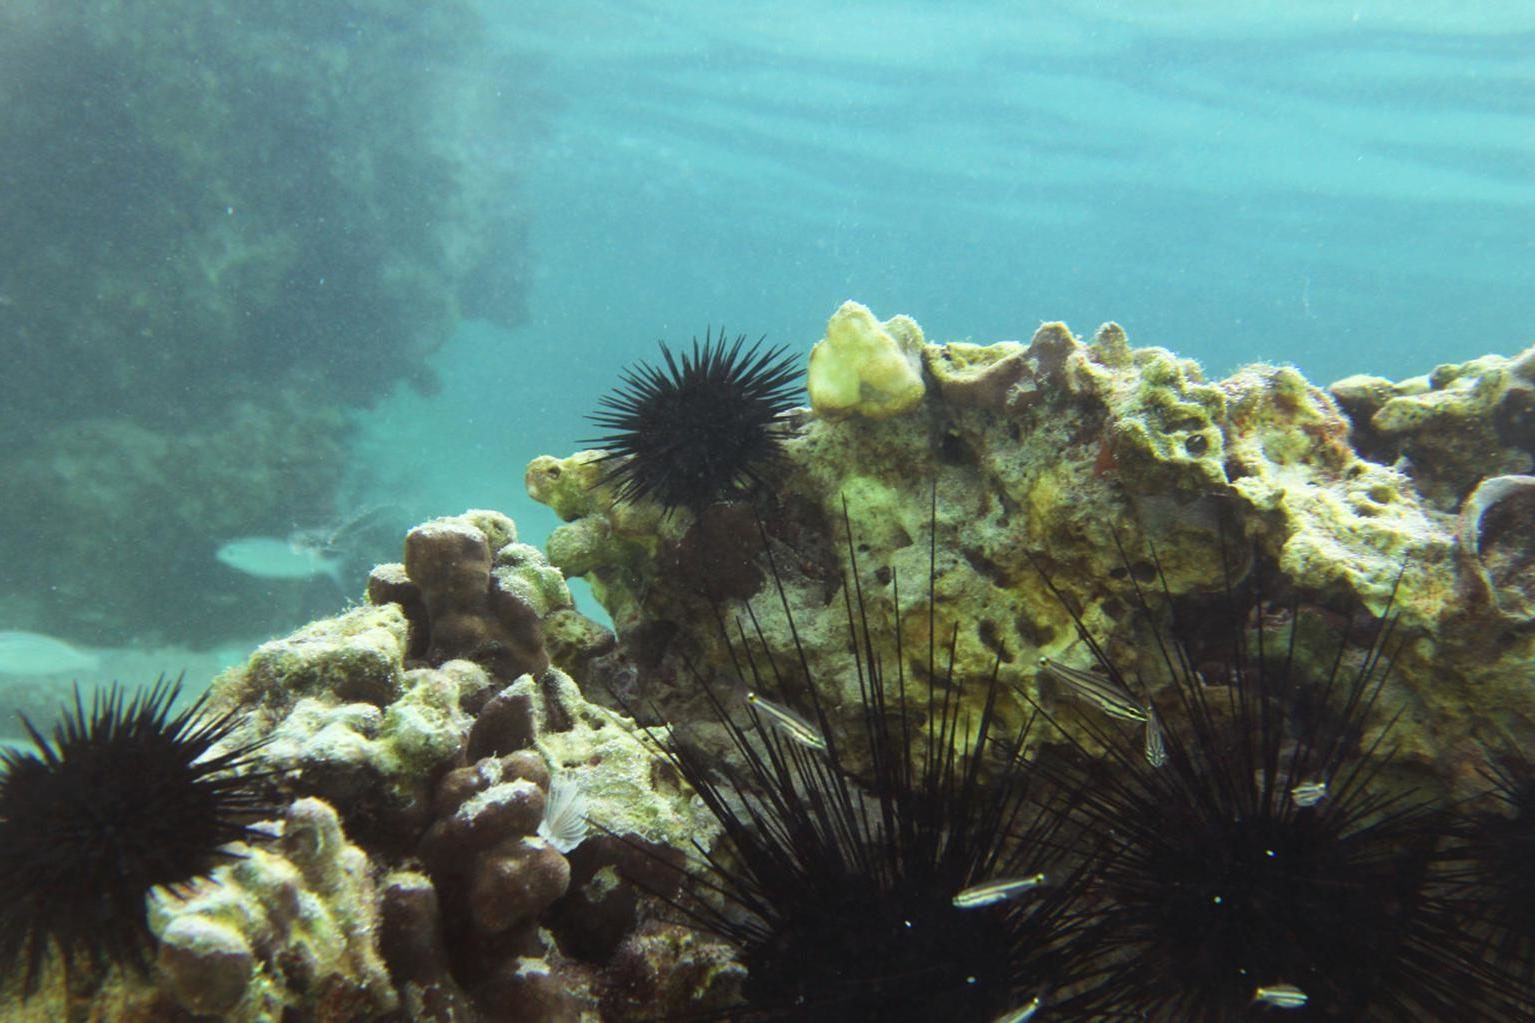 Free picture: underwater, ocean, reef, sea, water, coral, seascape, fish